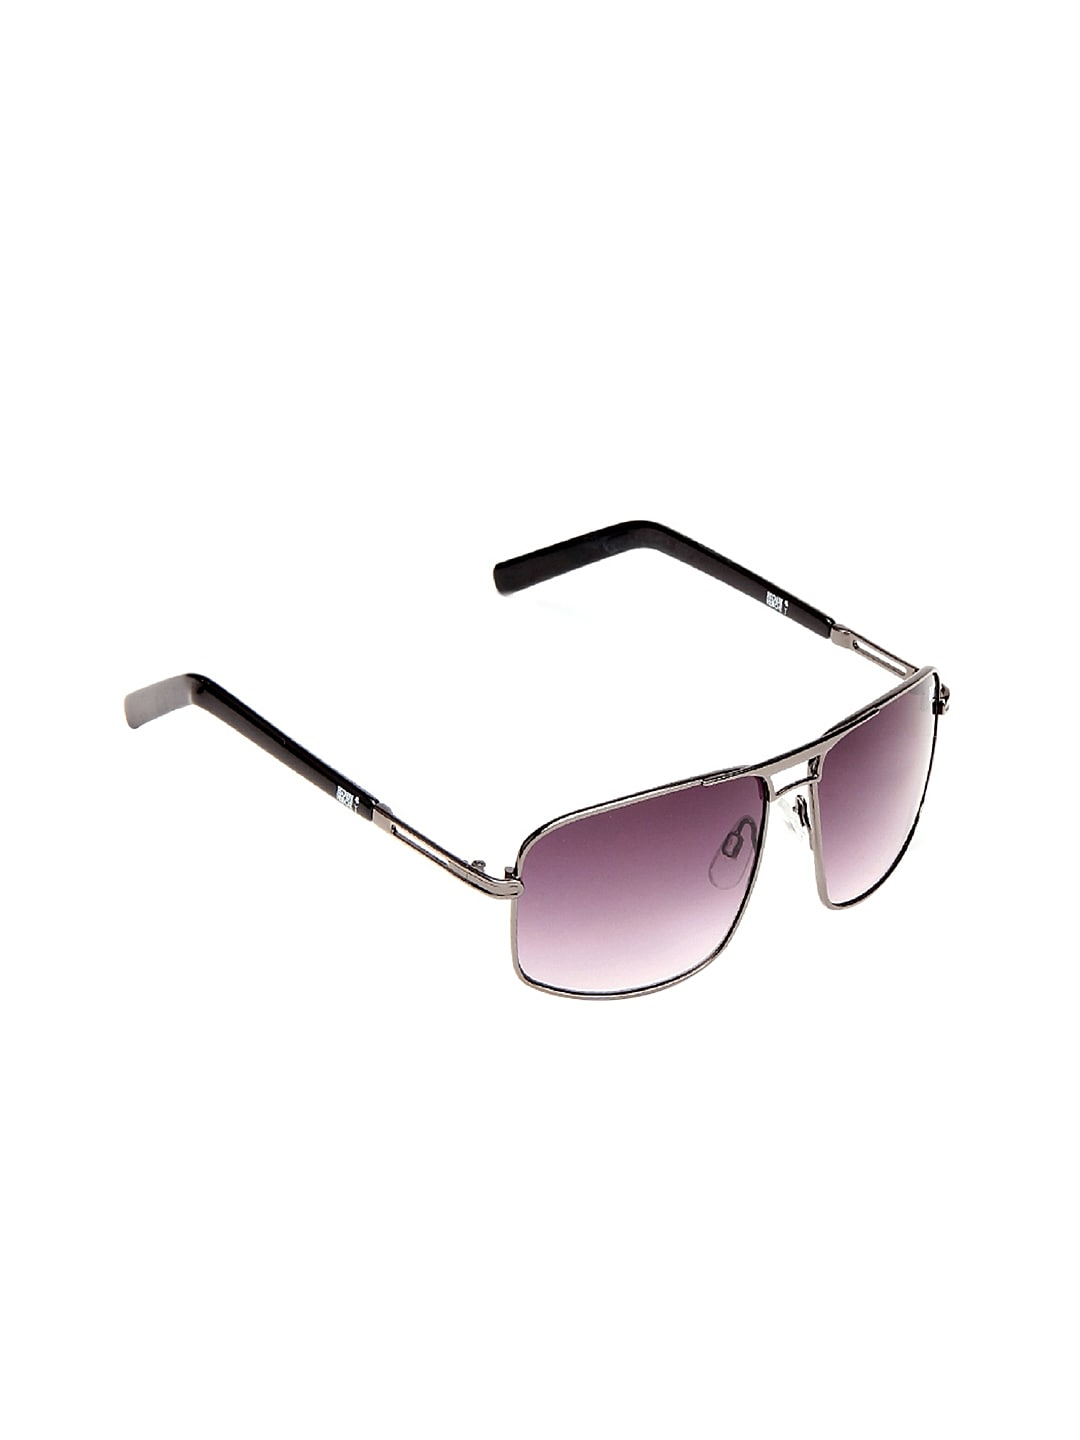 buy aviator sunglasses online  men aviator